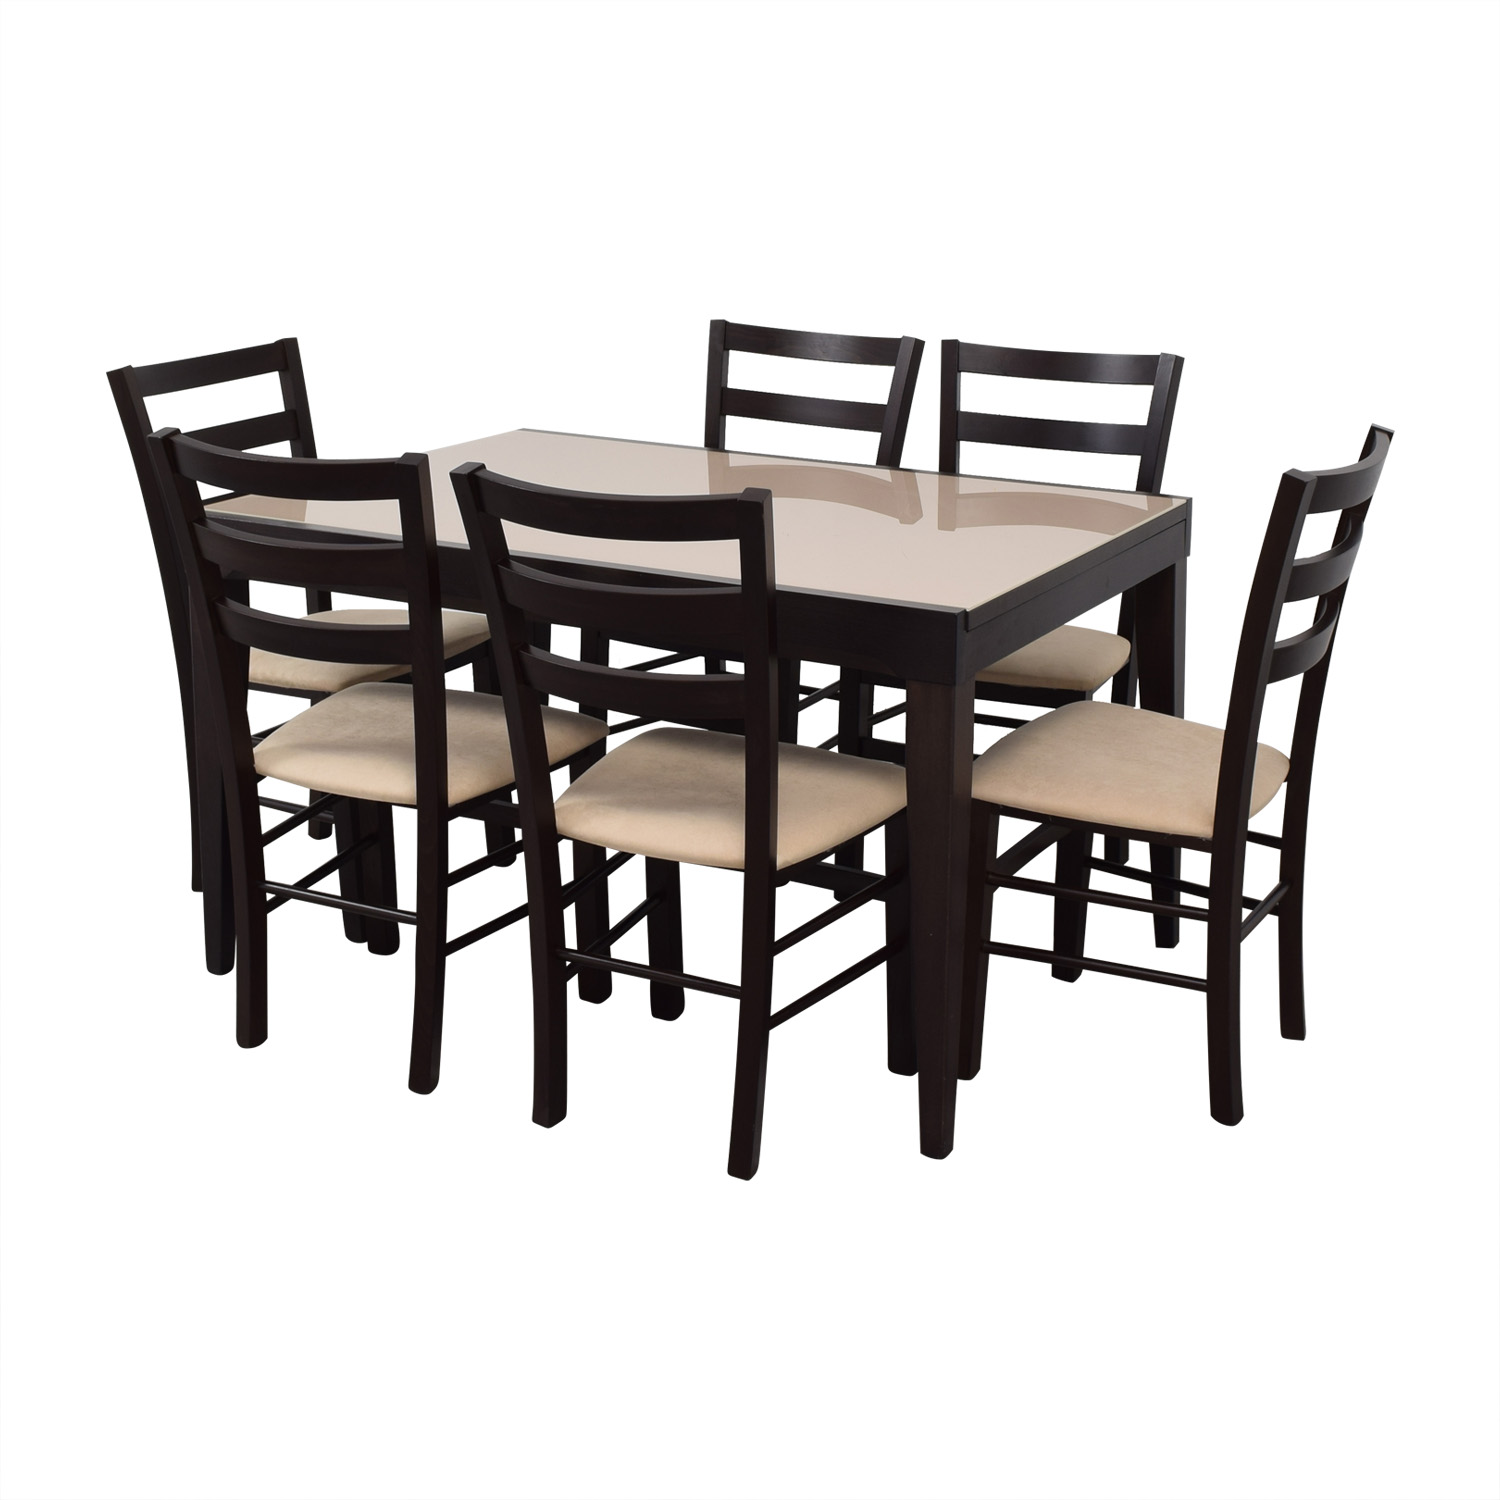 Calligaris Calligaris Extendable Dining Set Dining Sets